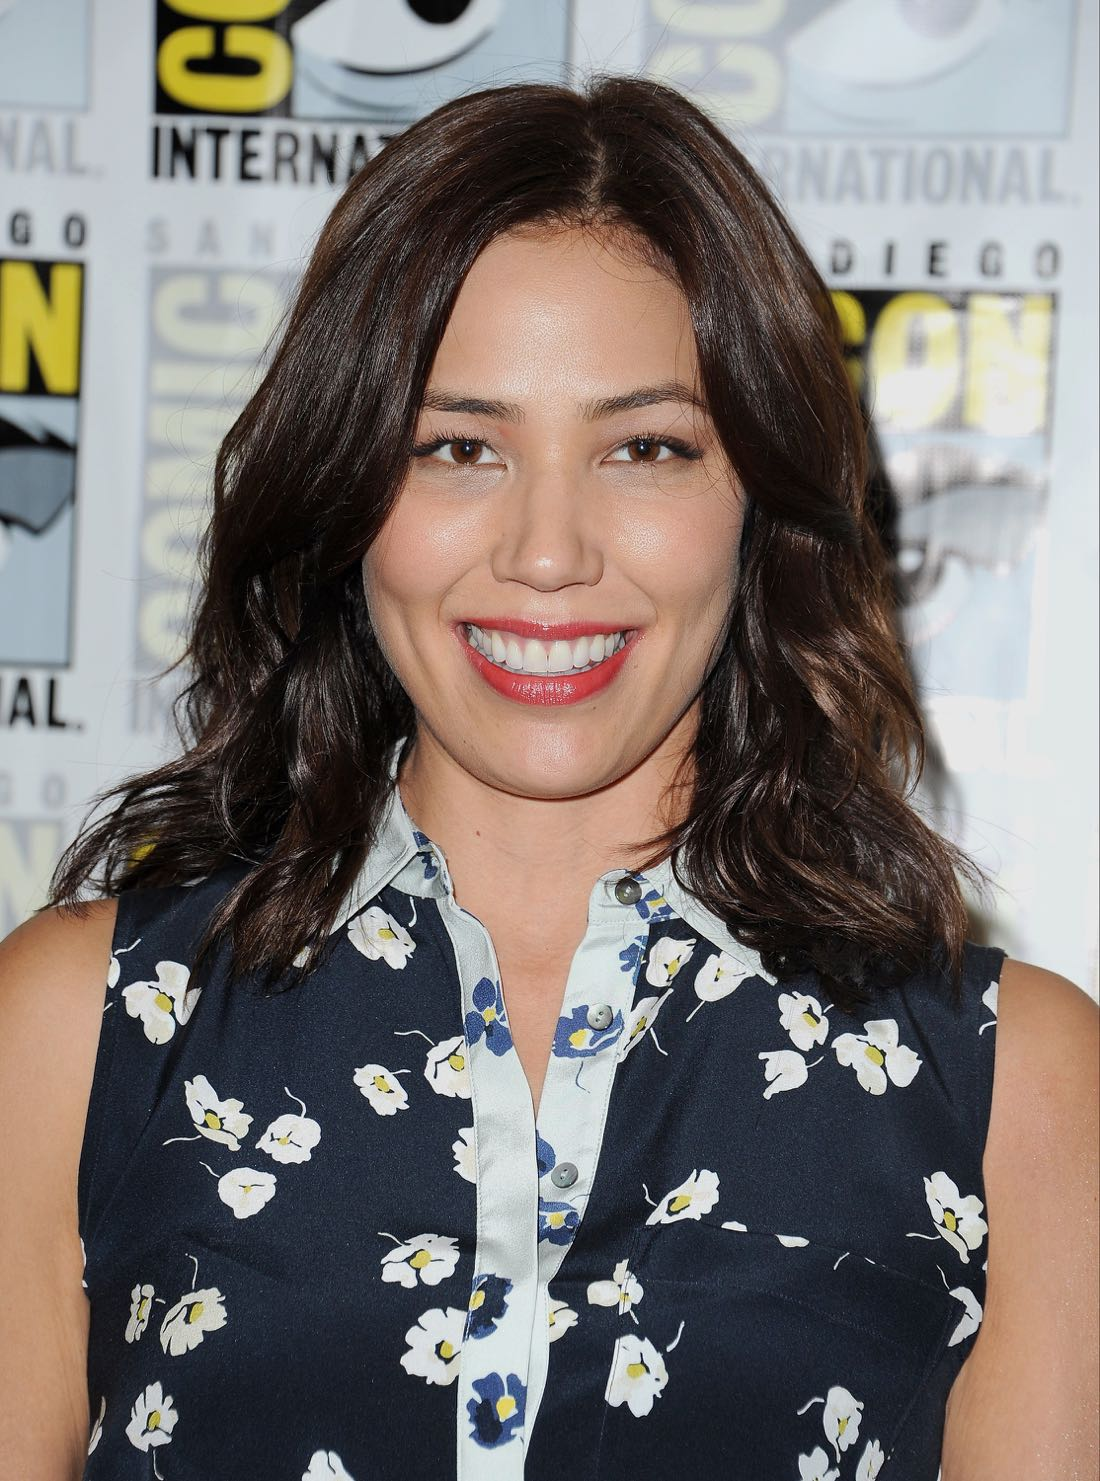 FOX FANFARE AT SAN DIEGO COMIC-CON © 2016: BONES cast member Michaela Conlin during the BONES press room on Friday, July 22 at the FOX FANFARE AT SAN DIEGO COMIC-CON © 2016. CR: Scott Kirkland/FOX © 2016 FOX BROADCASTING